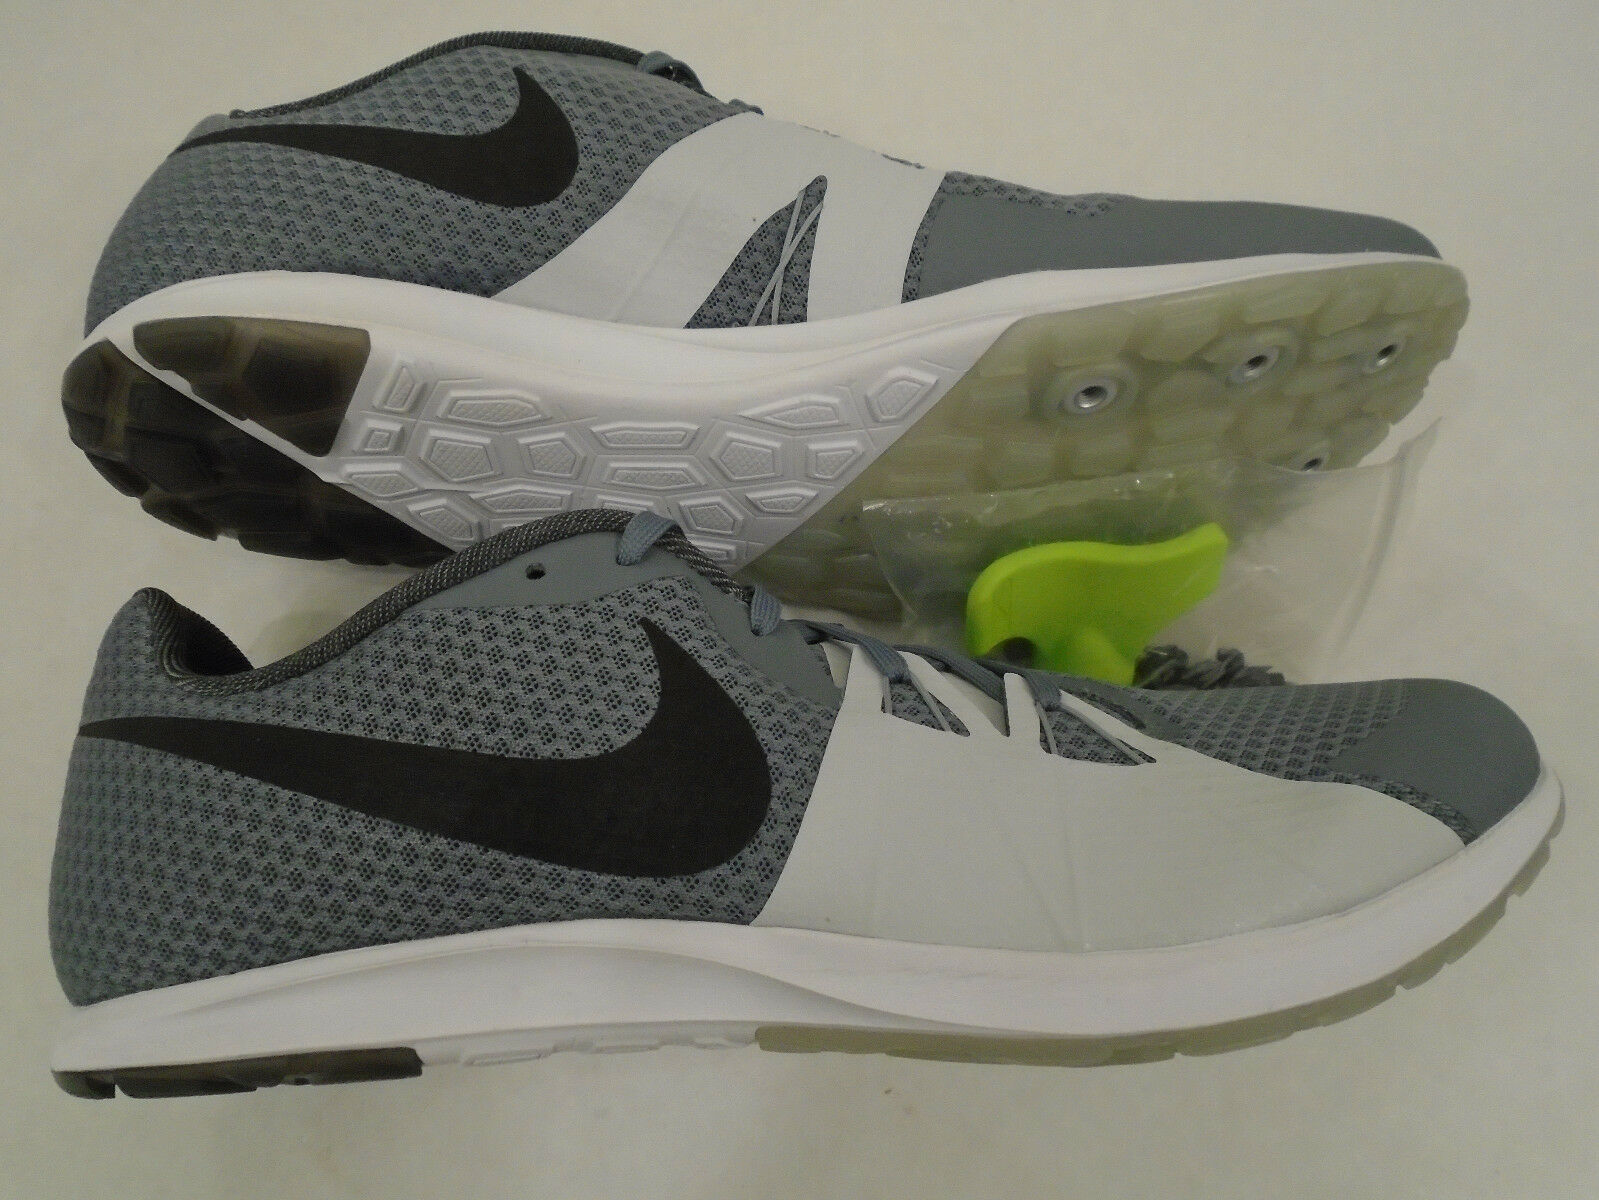 Special limited time New Nike Mens 13 Zoom Rival XC Racing Track Shoes Grey Black 904718-002 w/Tool